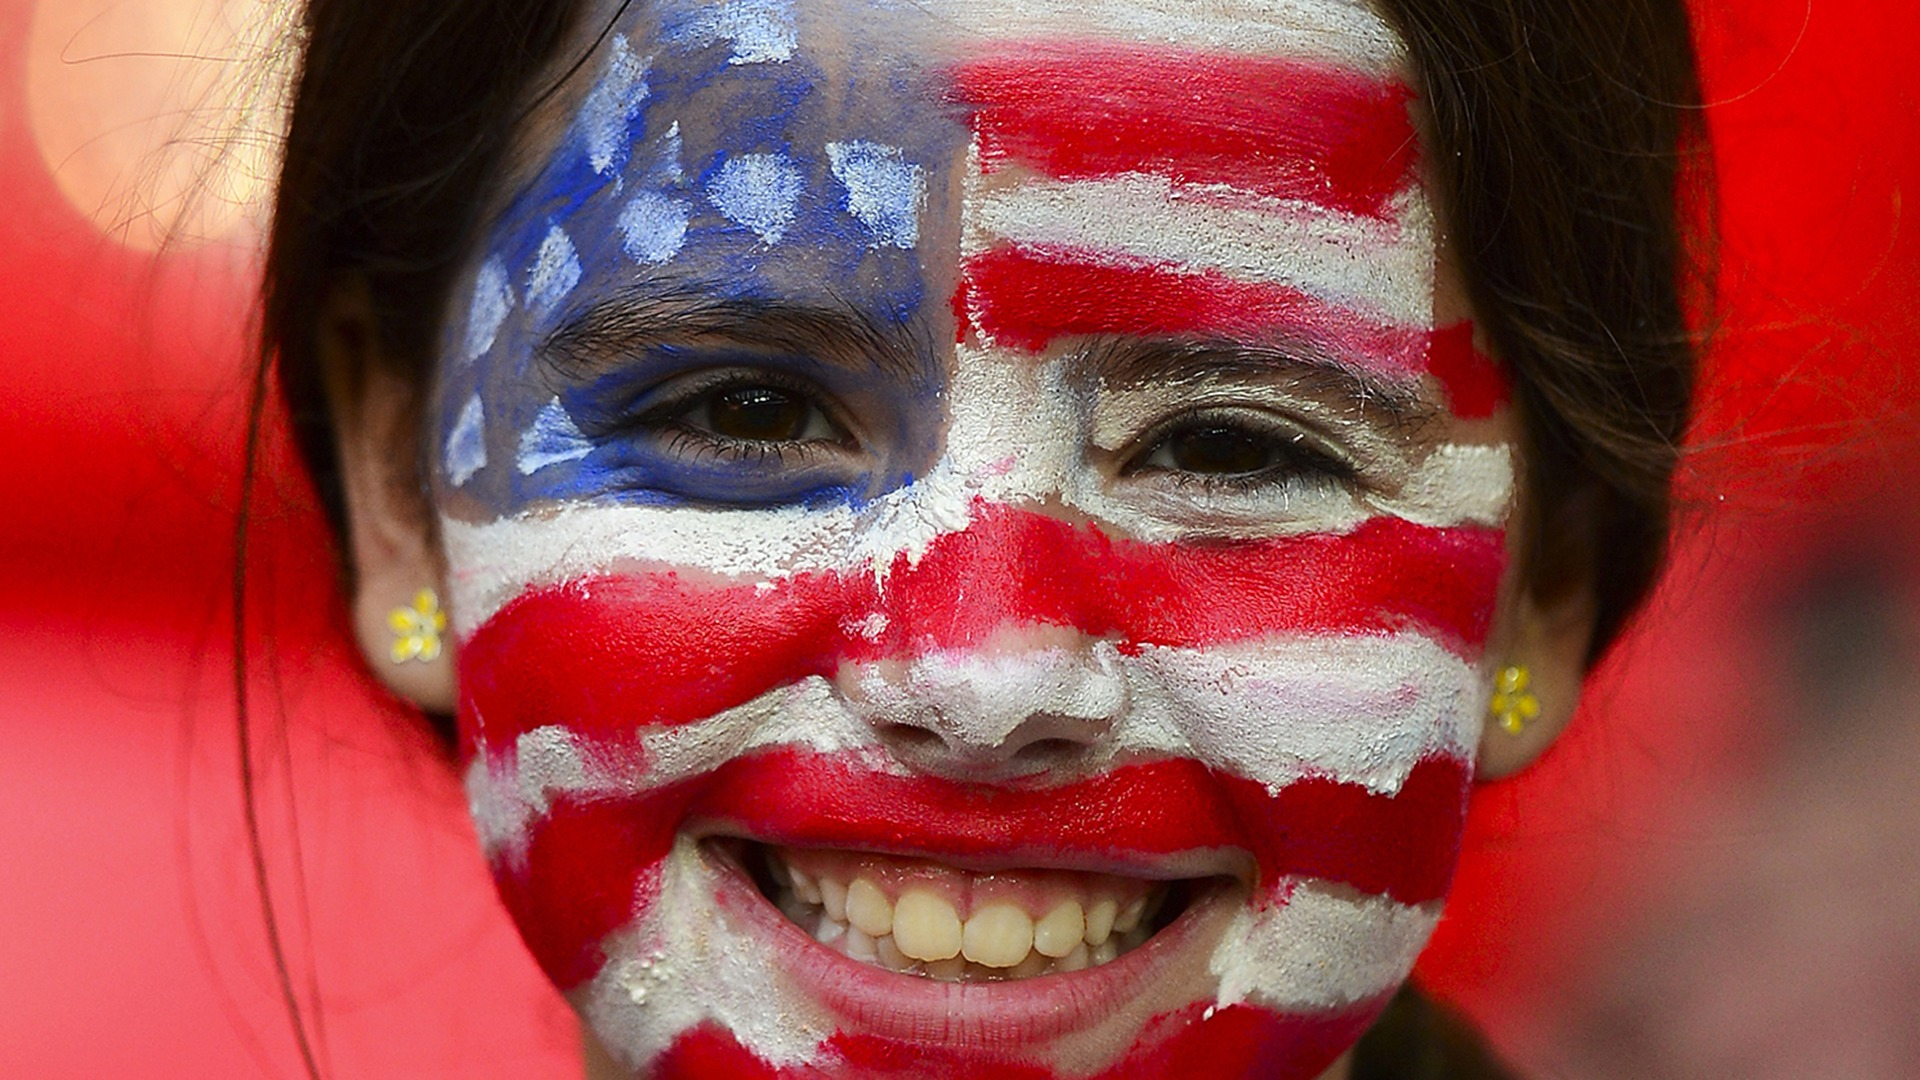 A US supporter has her face painted with